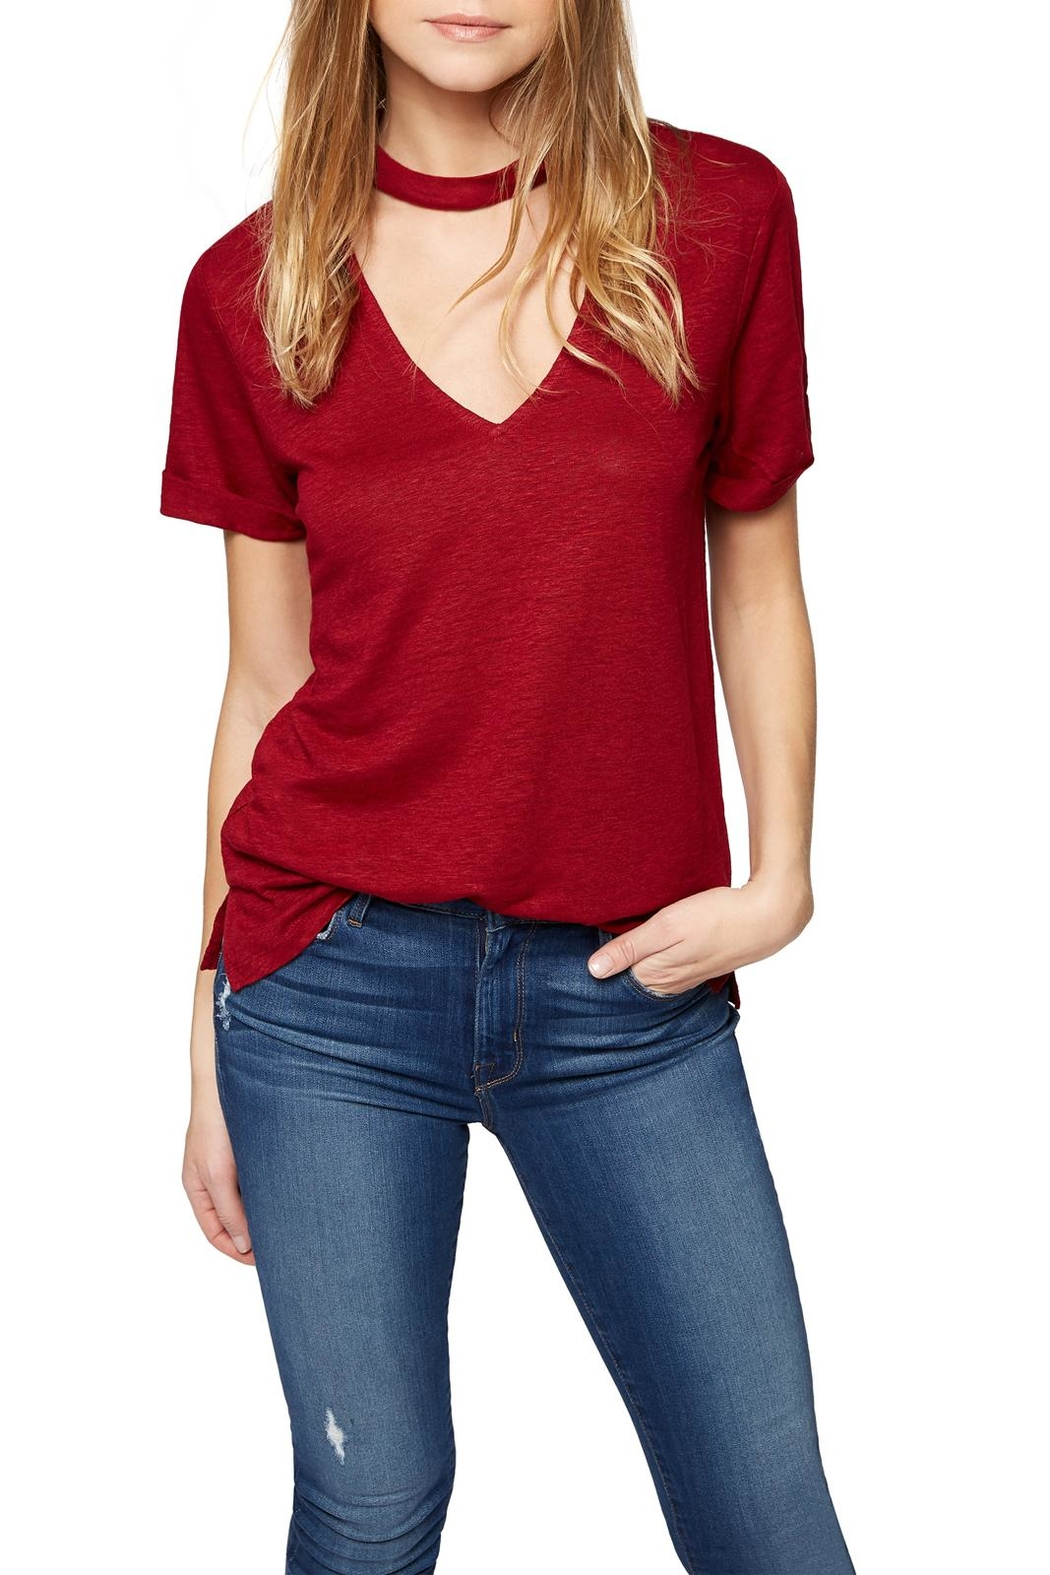 Sanctuary Choker Tee Top - Side Cropped Image